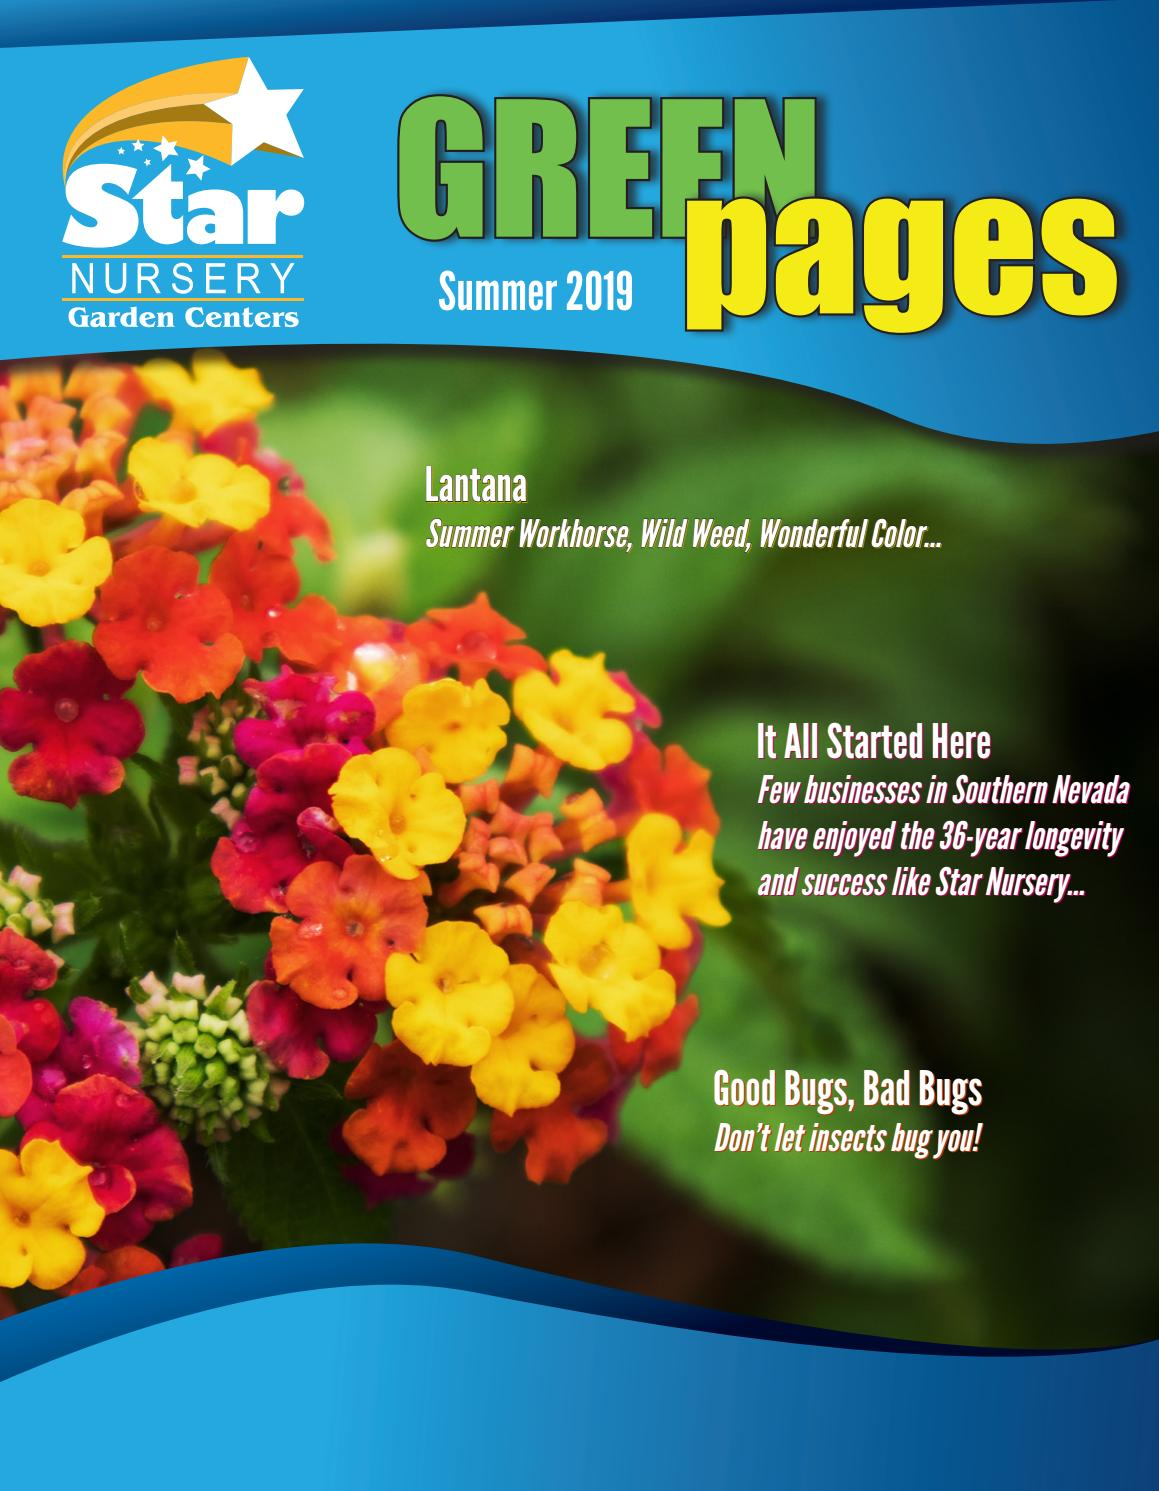 Green Pages Summer 2019 By Star Nursery